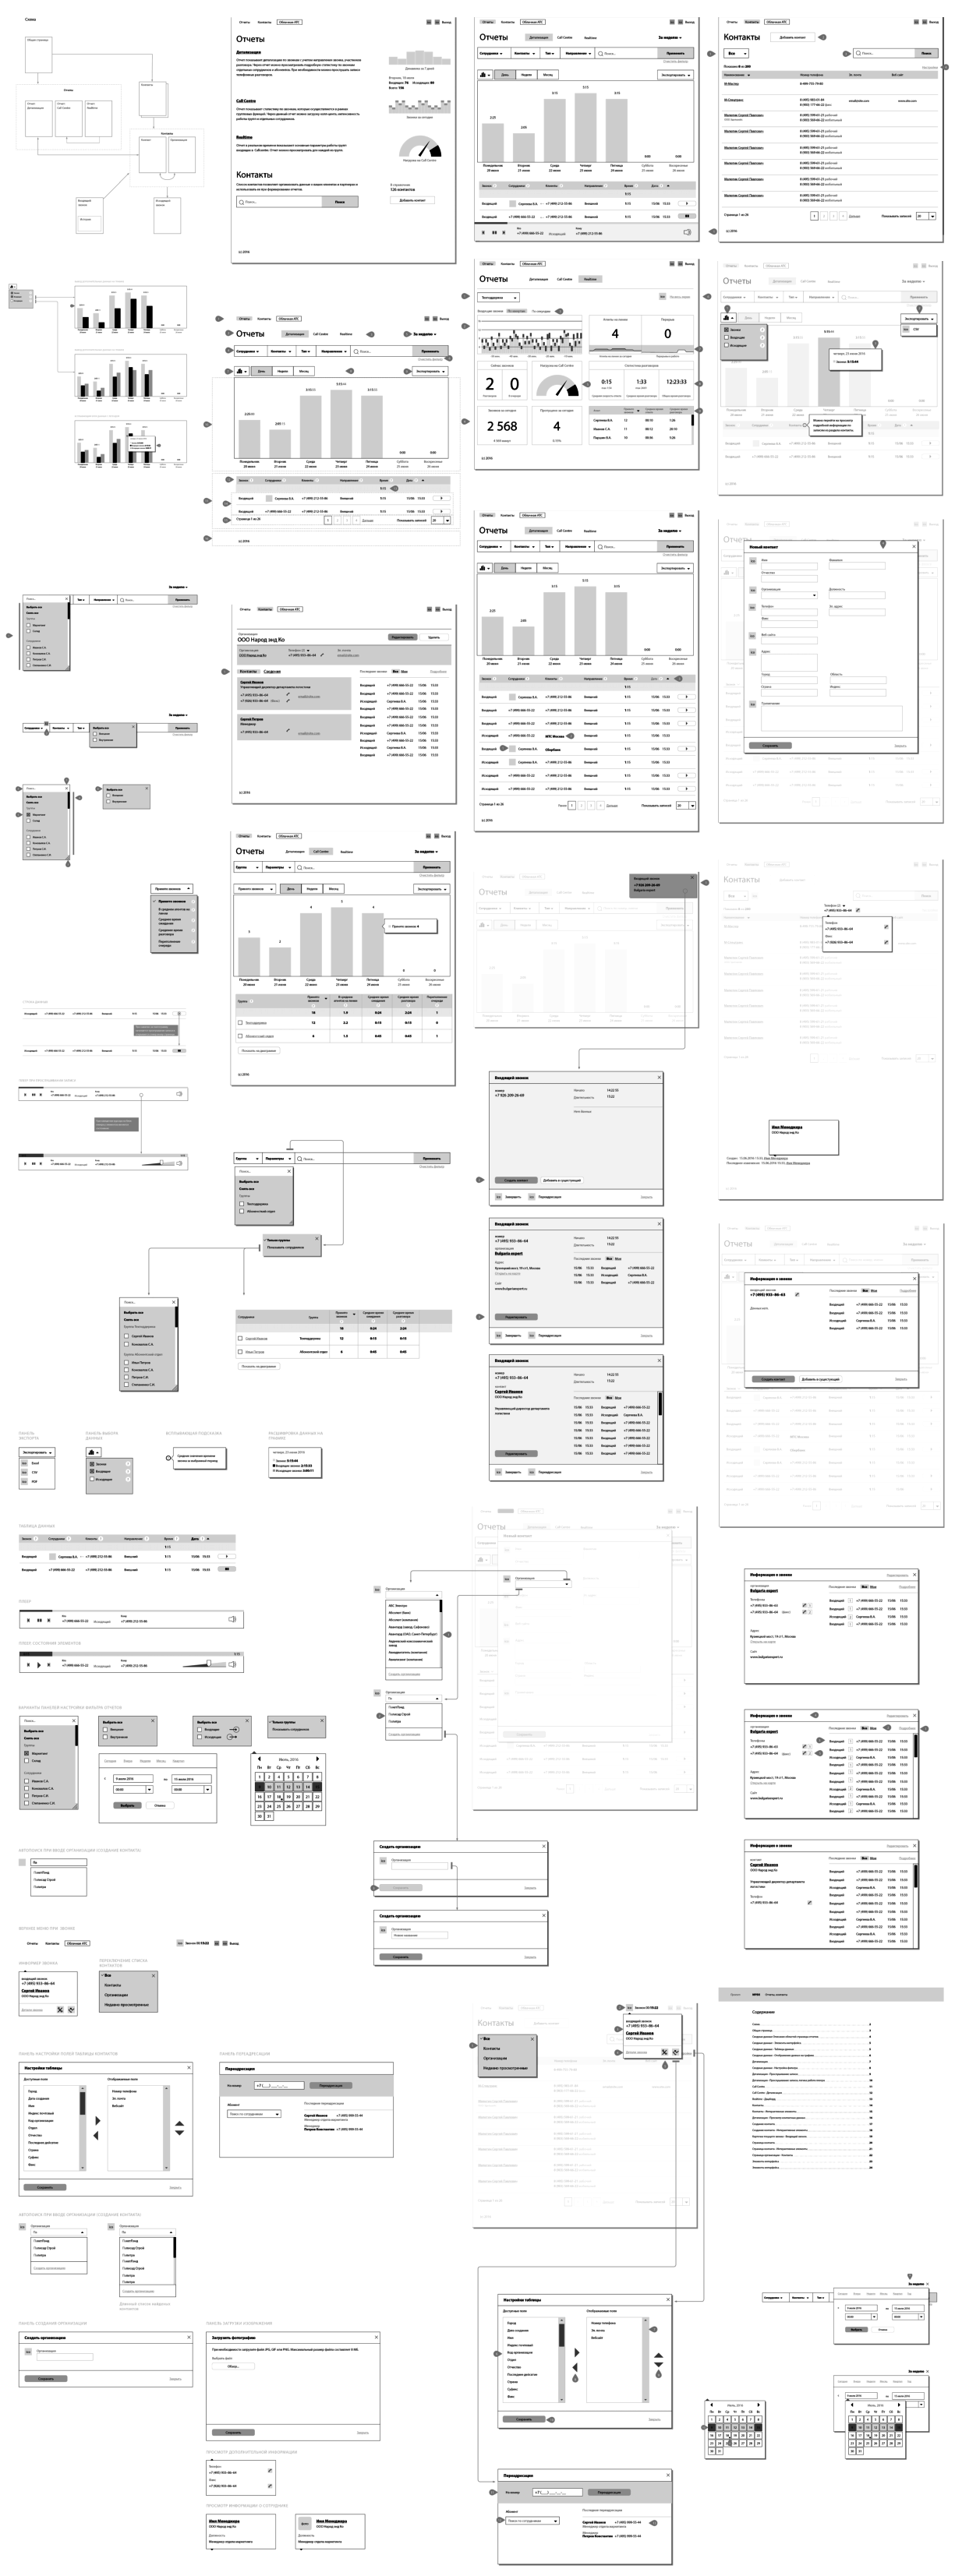 crm-wireframes